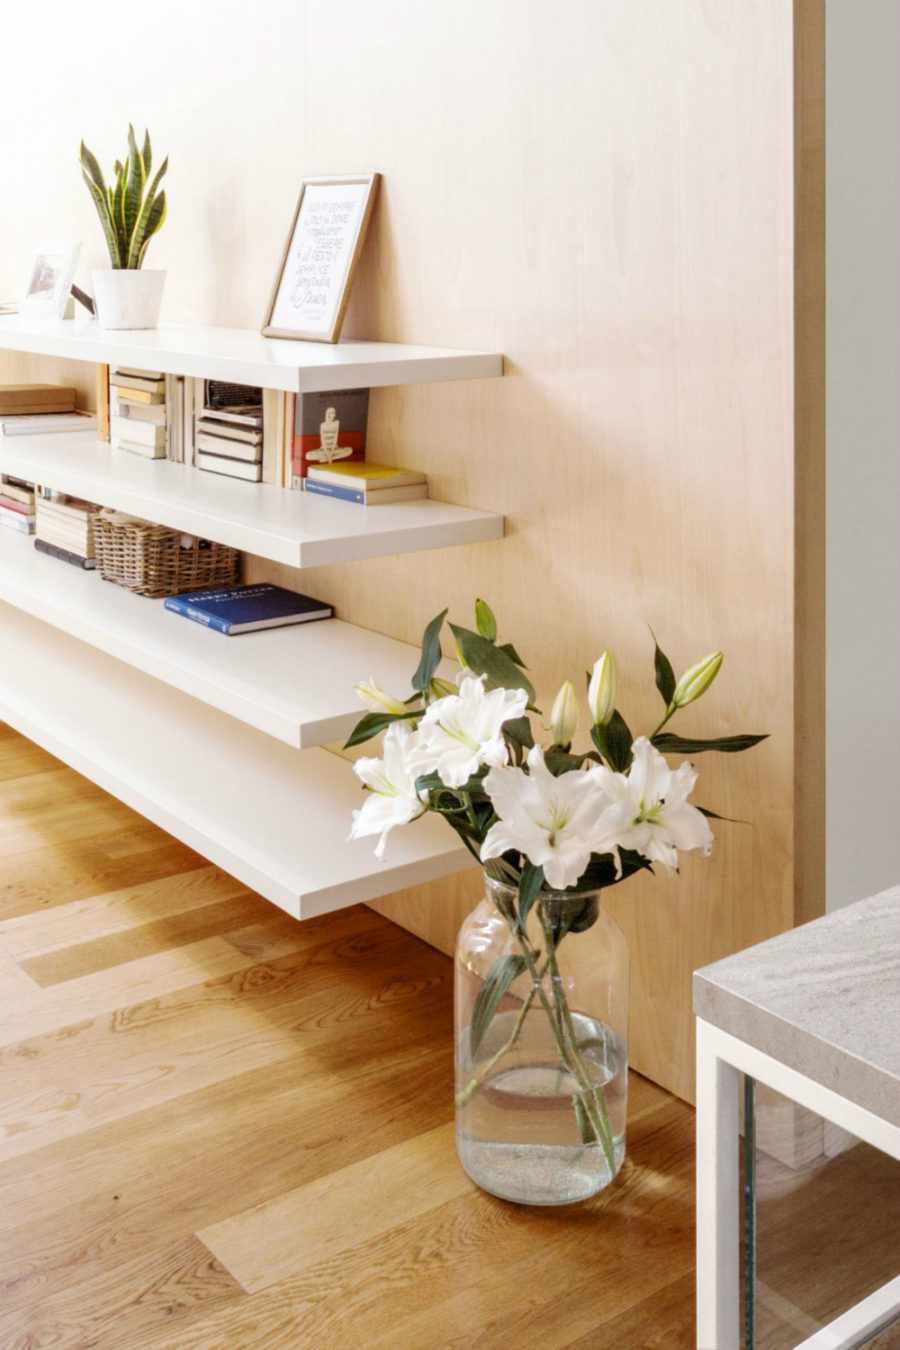 Open shelving provides storage for a home office across the seating room